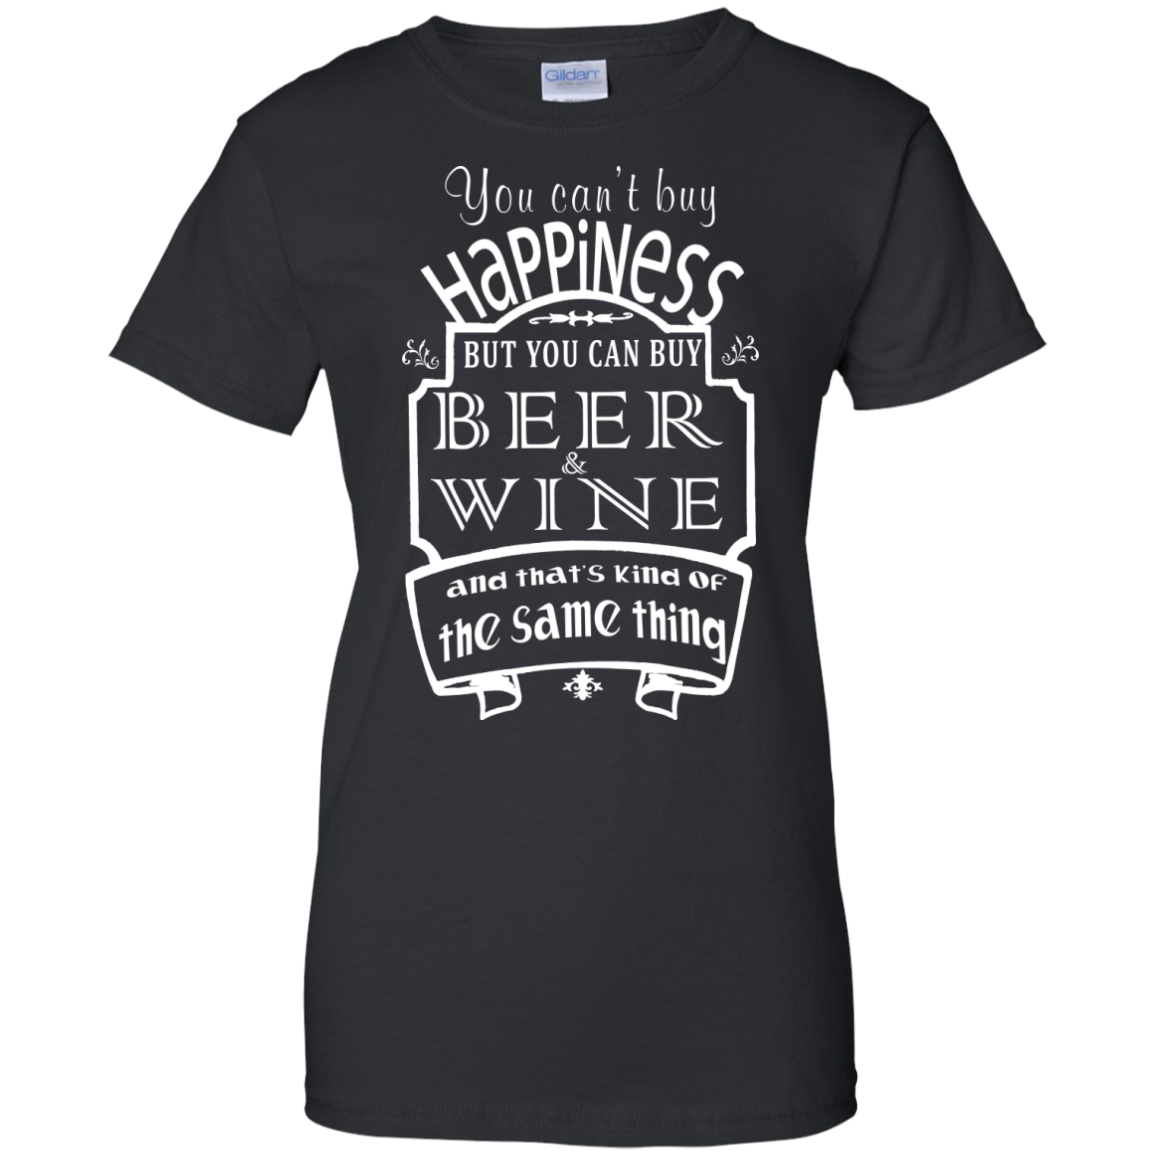 ...BEER & WINE... - TheSunCat.com - 4